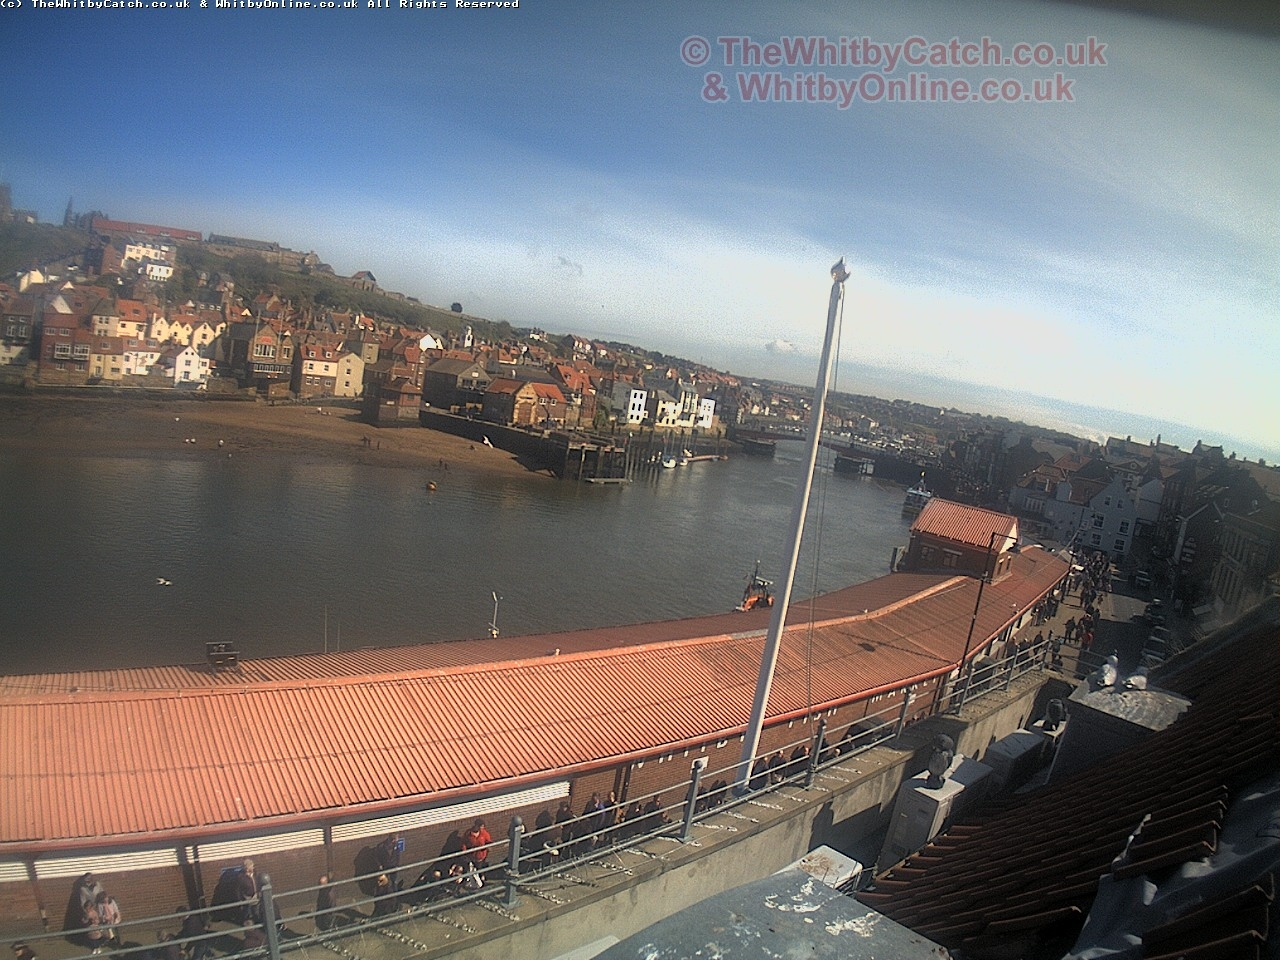 Whitby - Looking up the river.